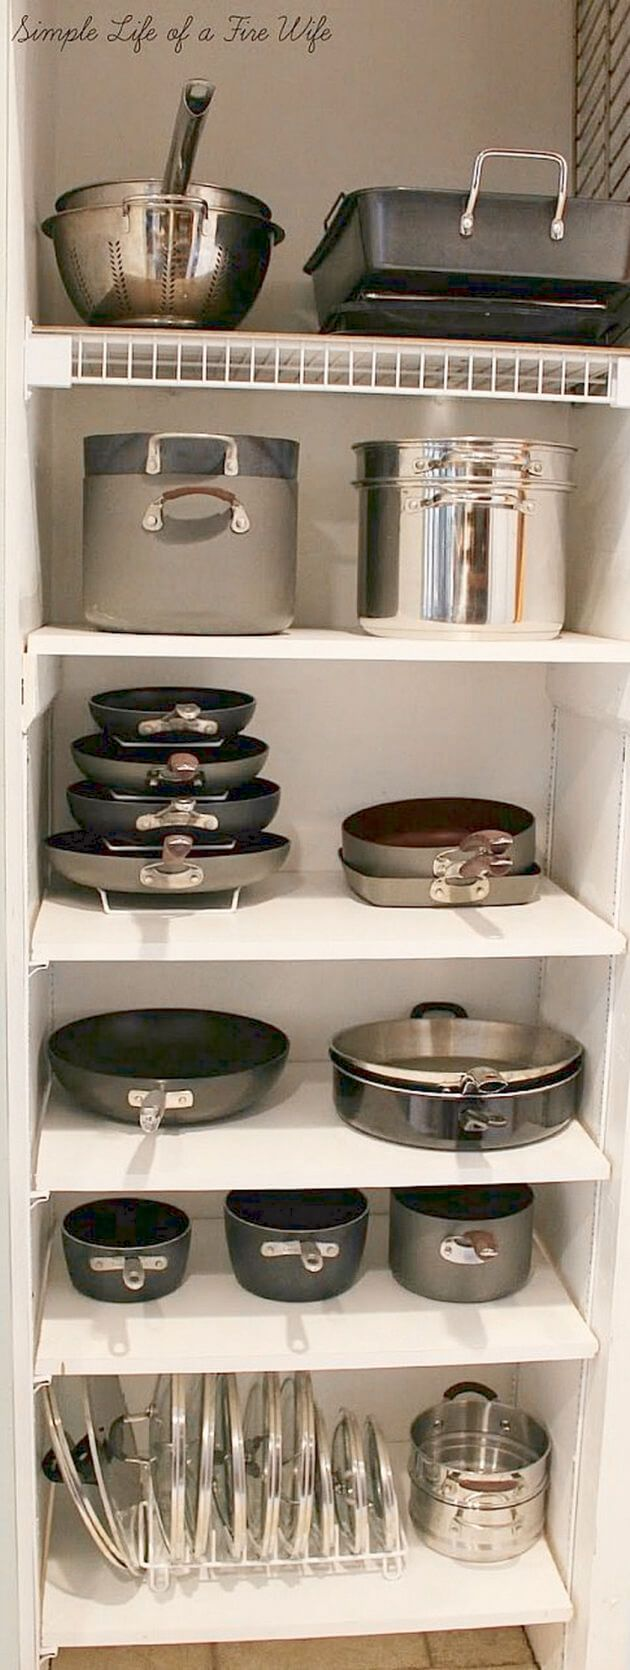 35 Practical Storage Ideas For A Small Kitchen Organization | Cocina ...